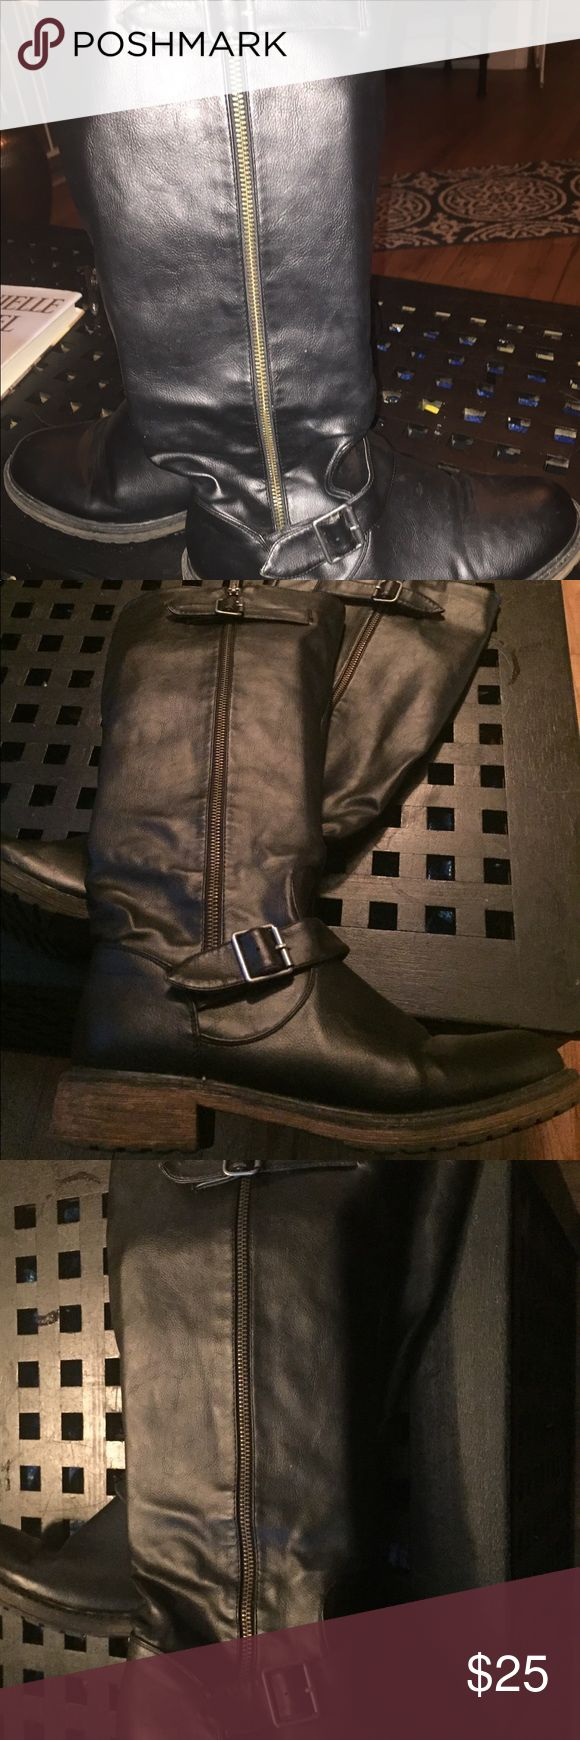 EUC SKECHERS BLACK KNEE HIGH BOOTS SIZE 8.5 These black boots made by Skechers are in excellent condition they are size 8 1/2 they are black they have zippers up each side and then go up to the knee they have a lighter colored sole Skechers Shoes Winter & Rain Boots